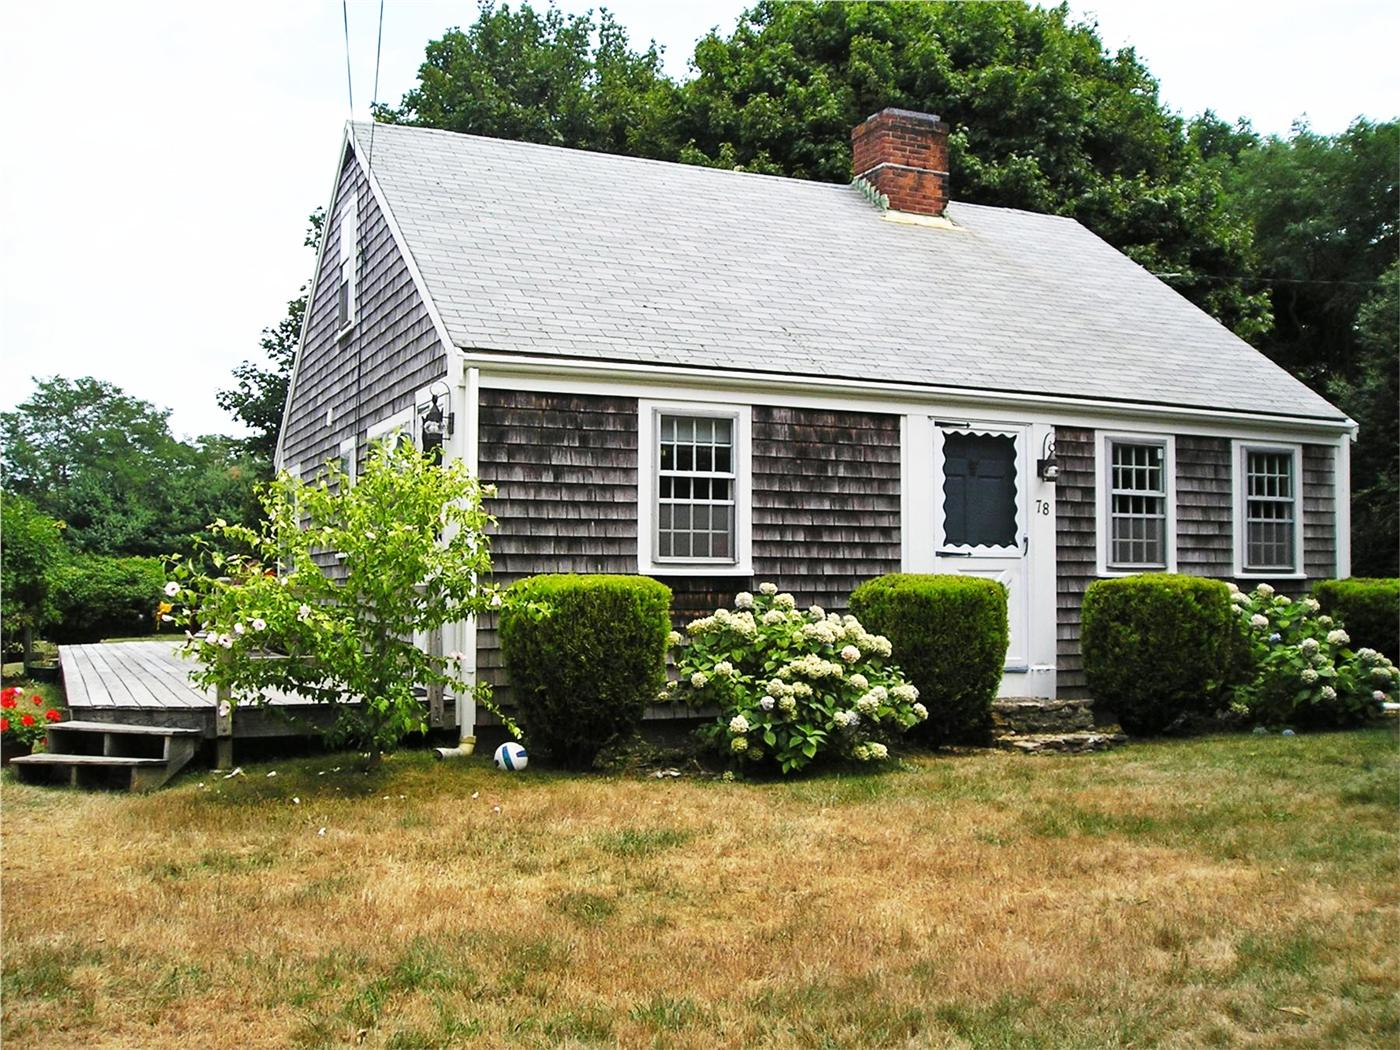 Orleans Vacation Rental Home In Cape Cod Ma 02643 Id 10260